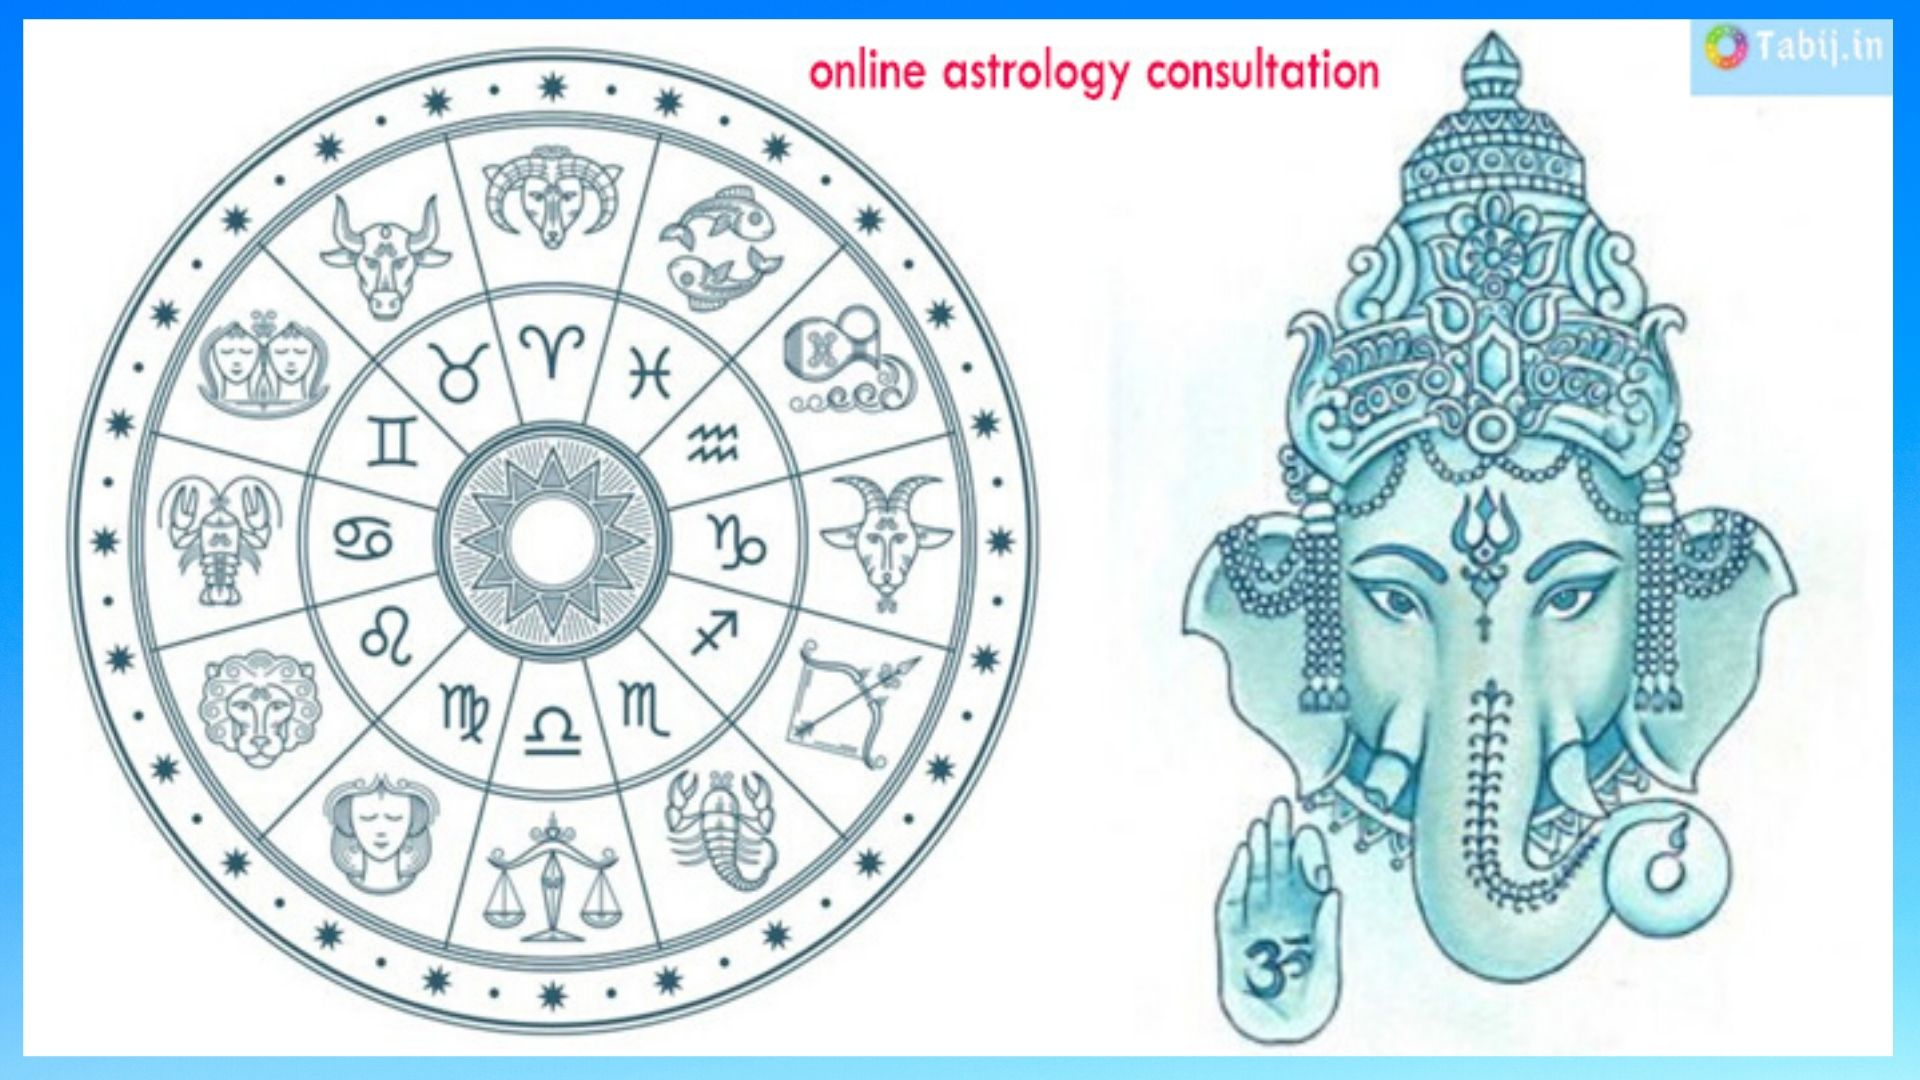 Online astrology consultation-tabij.in